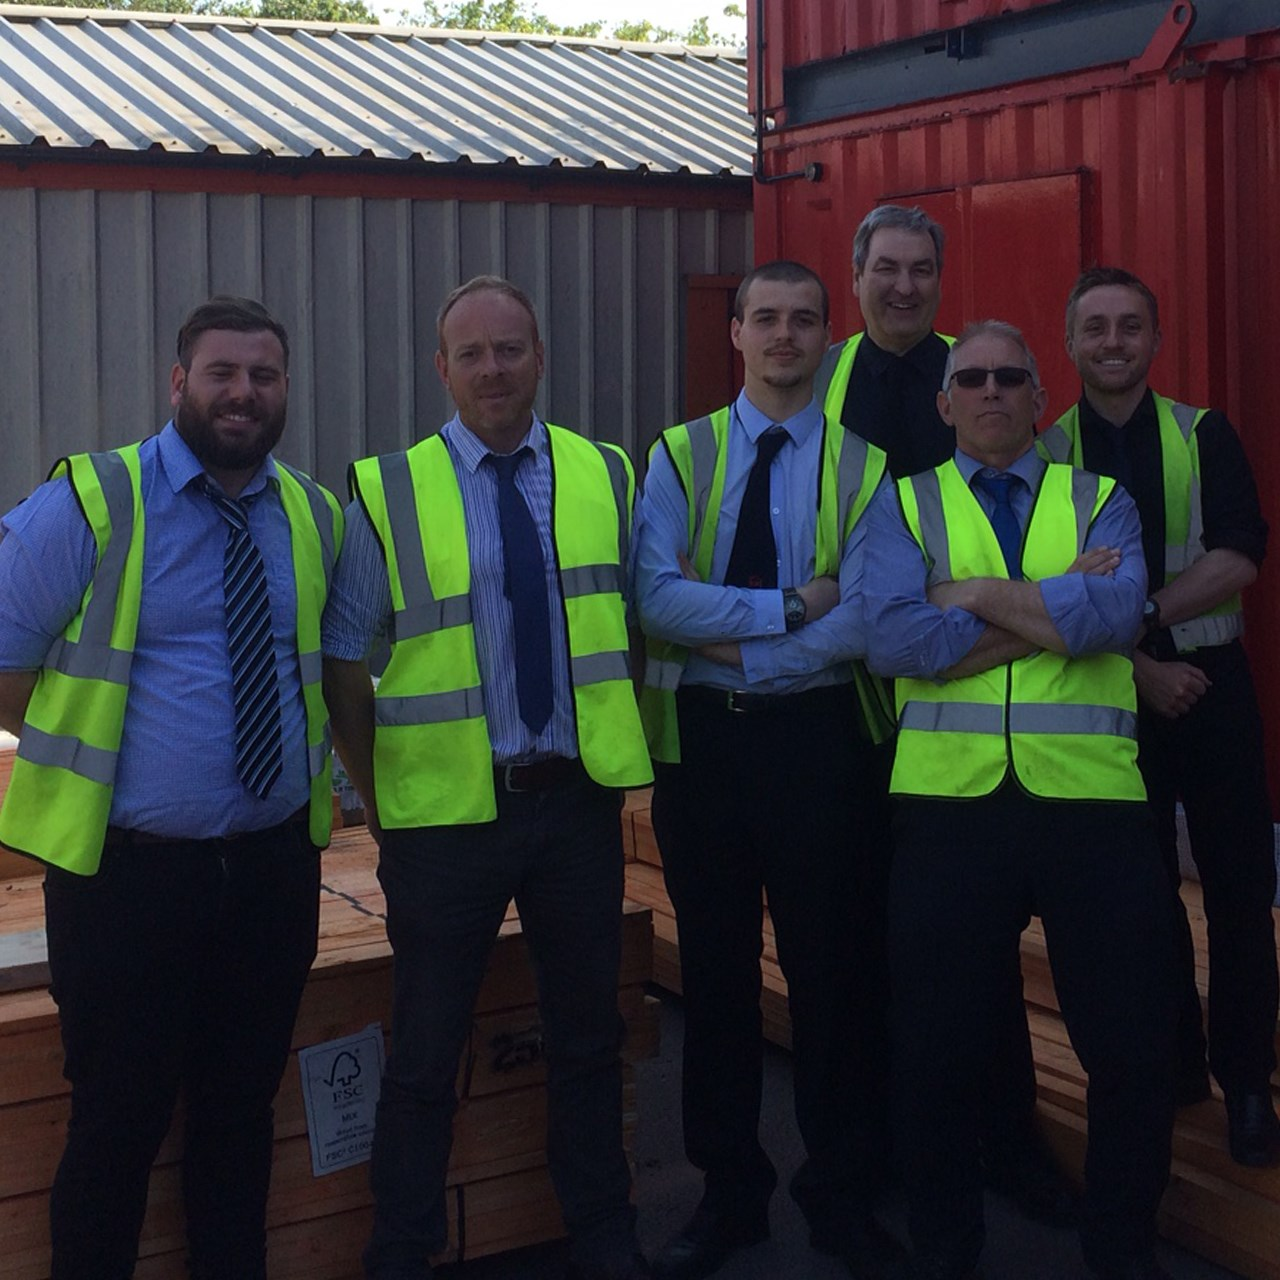 acquisition of SM Roofing Contracts Ltd